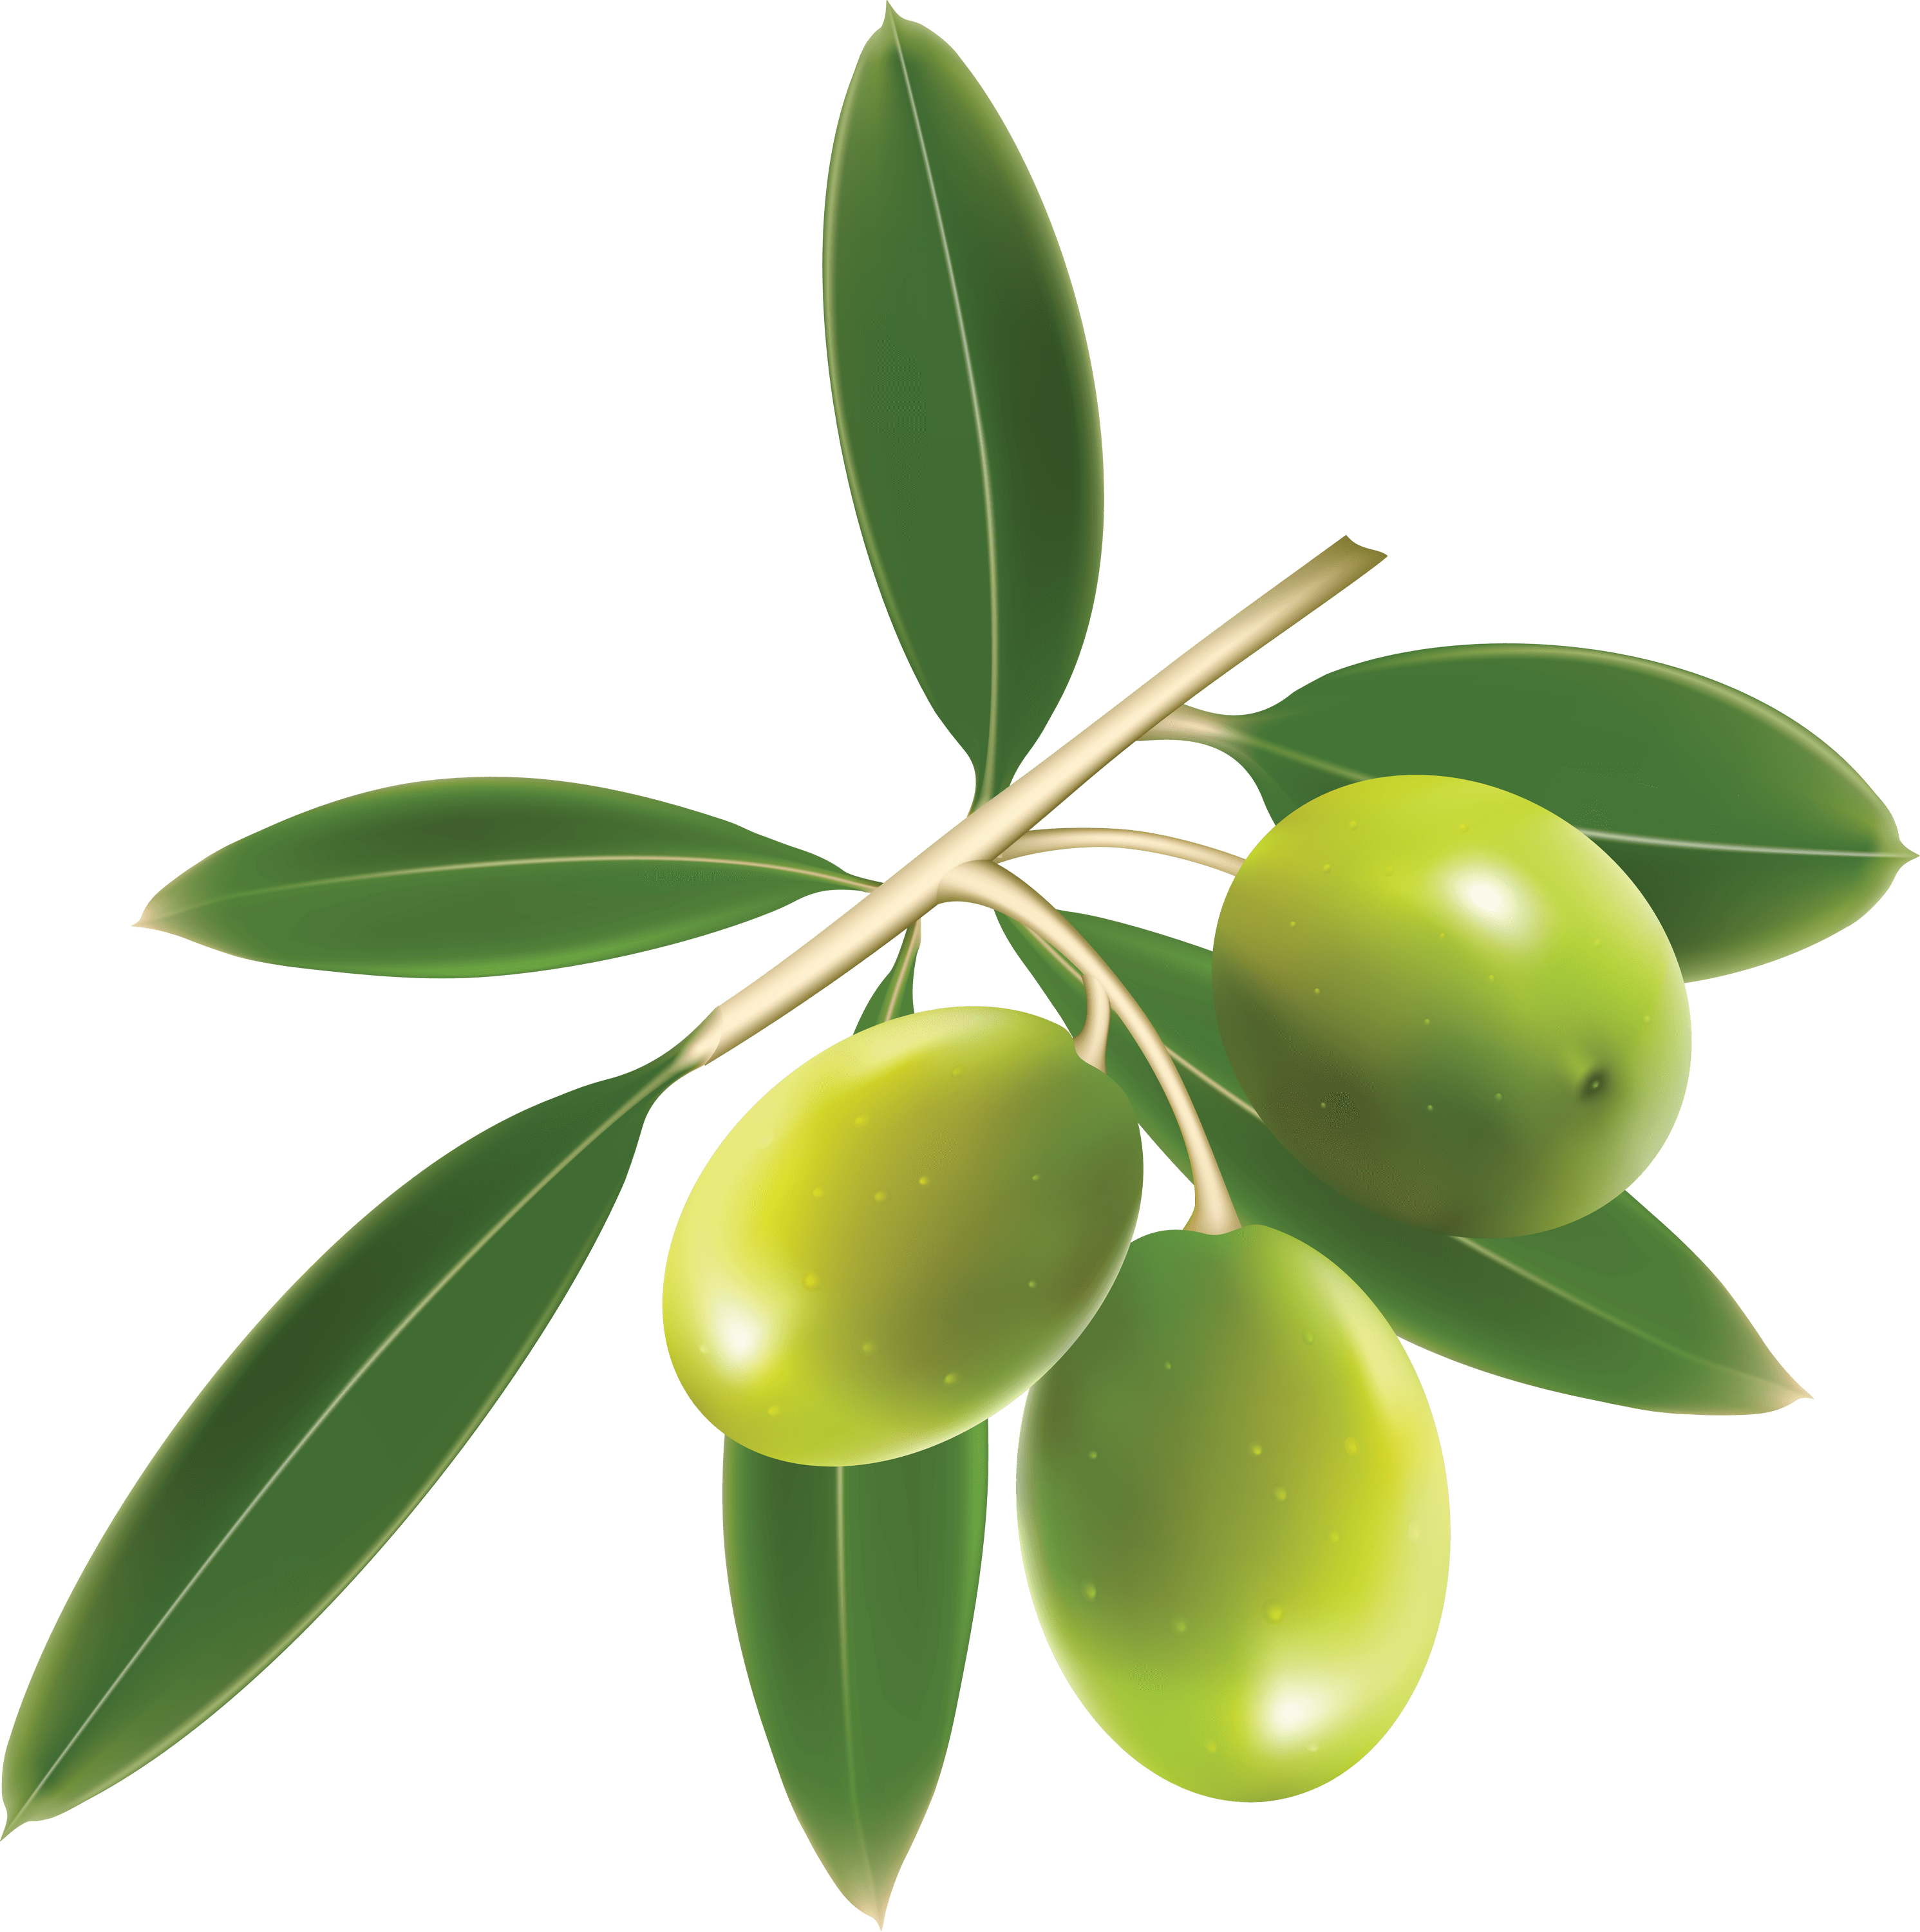 green olives trio transparent png stickpng #30050